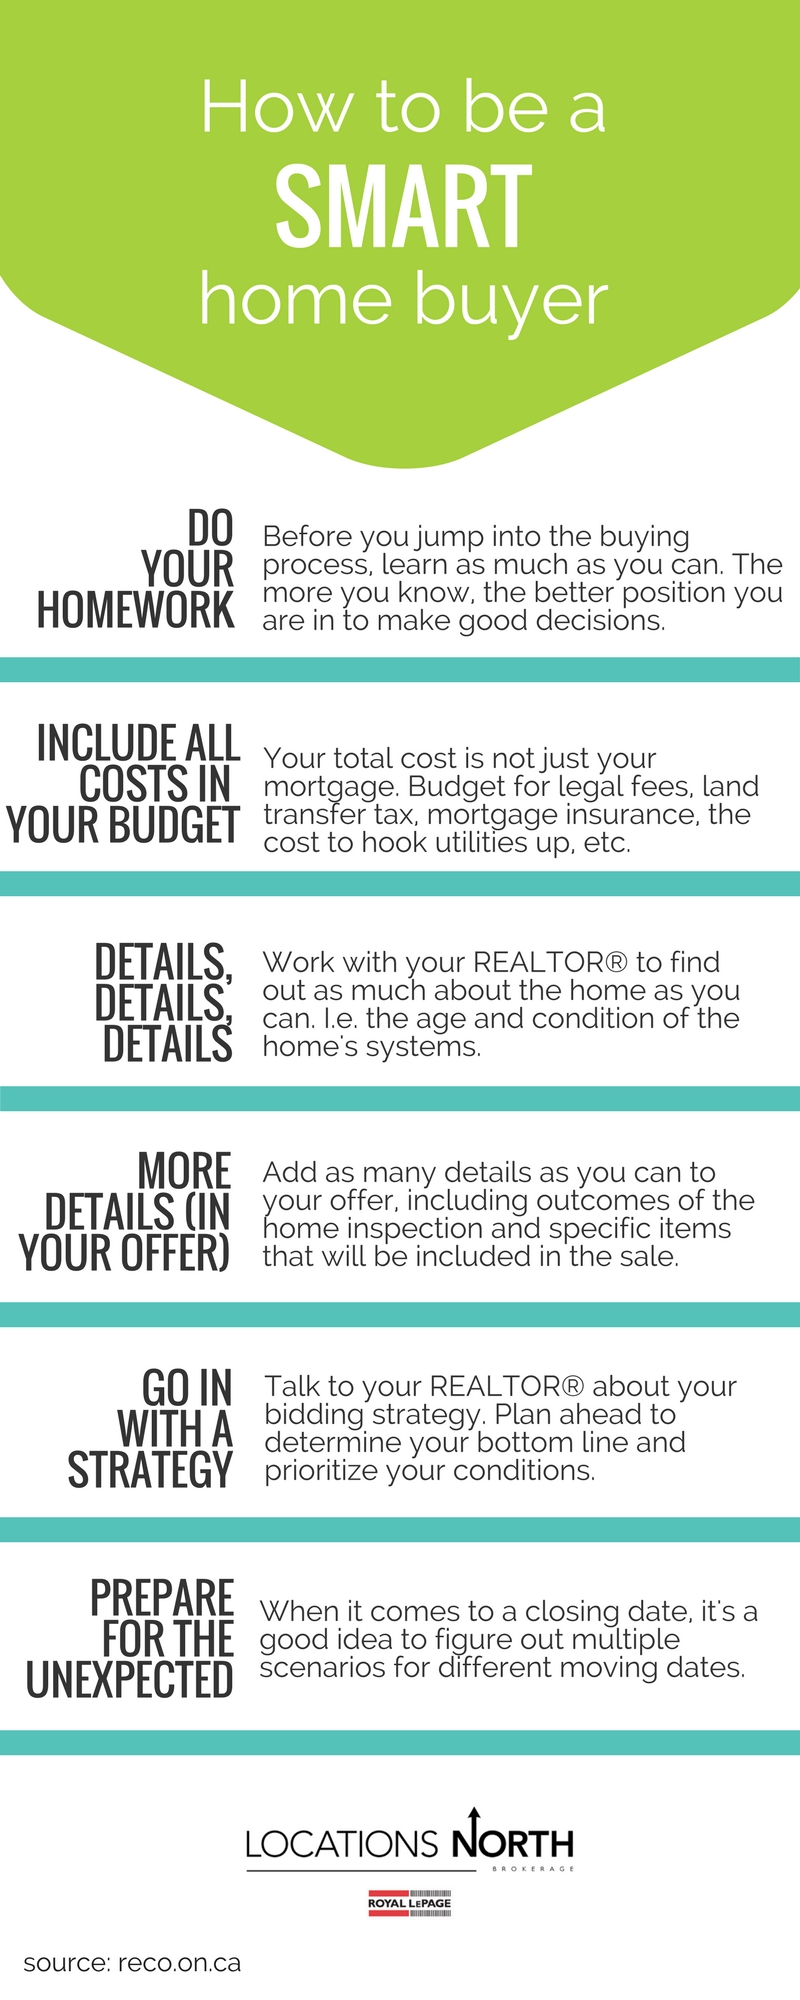 Georgian Triangle Home Buyer's Guide Infographic